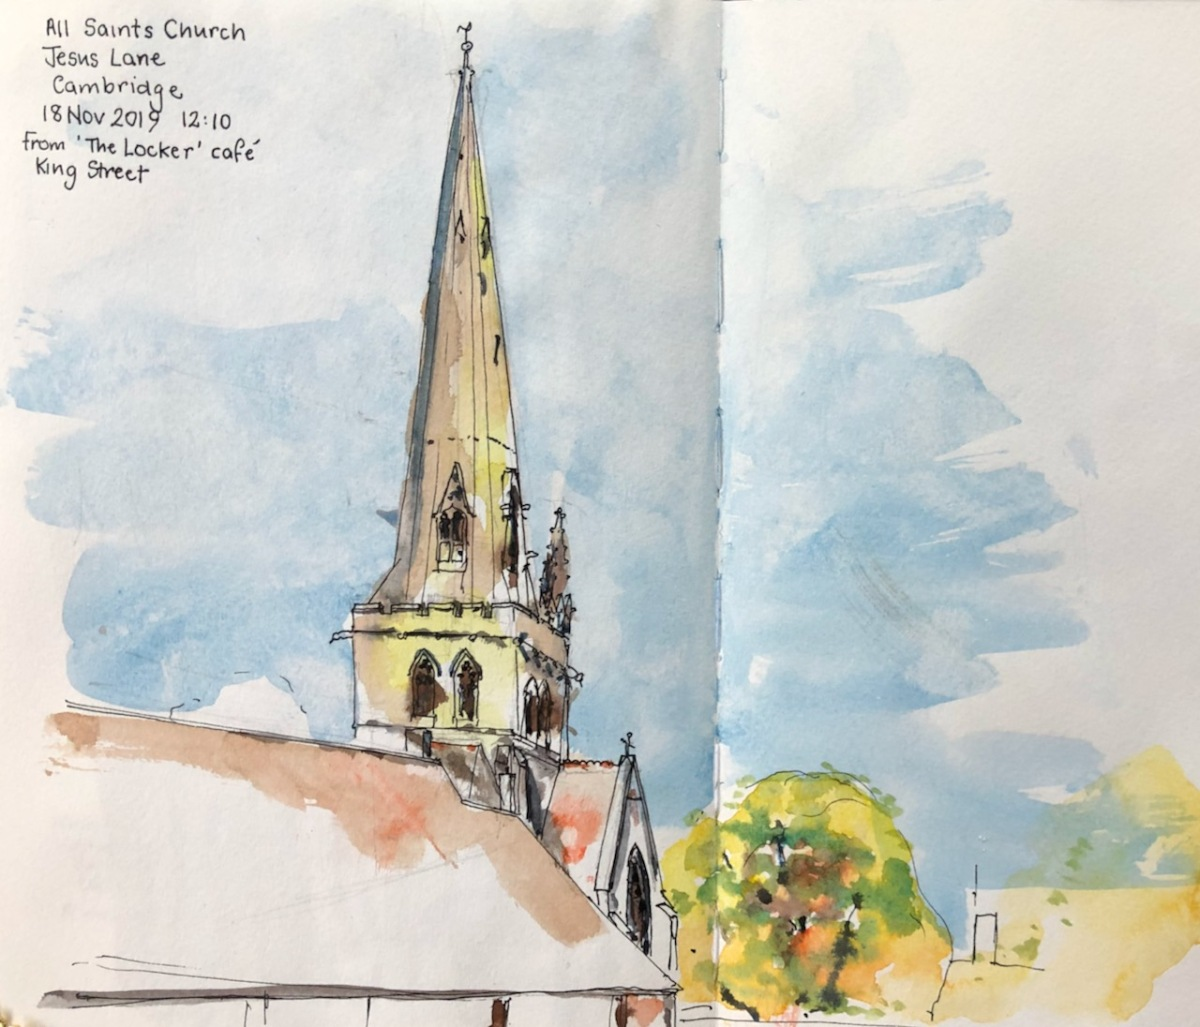 Sketching in Cambridge